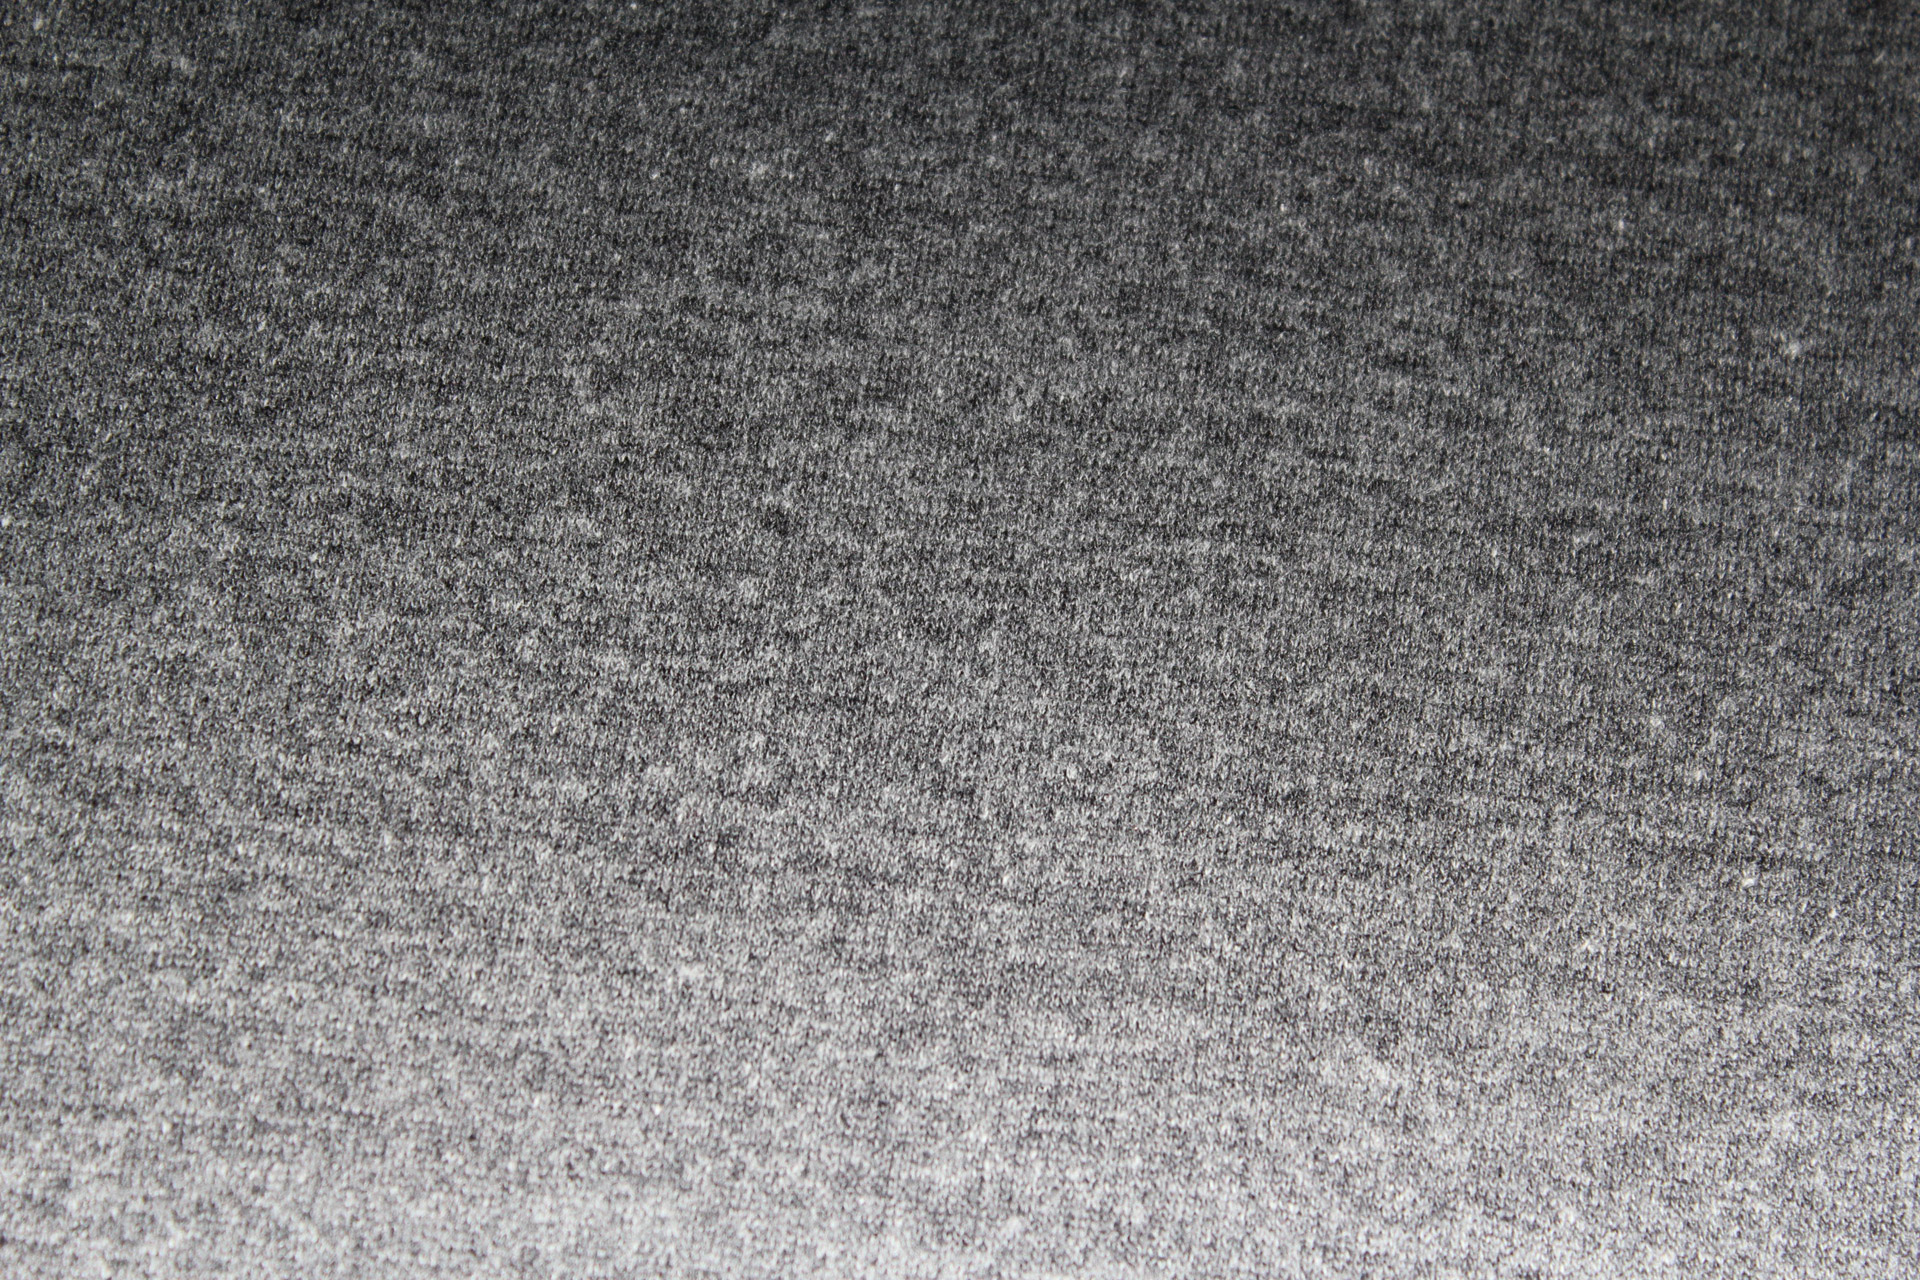 Gray Textile Background 5 Free Stock Photo - Public Domain Pictures